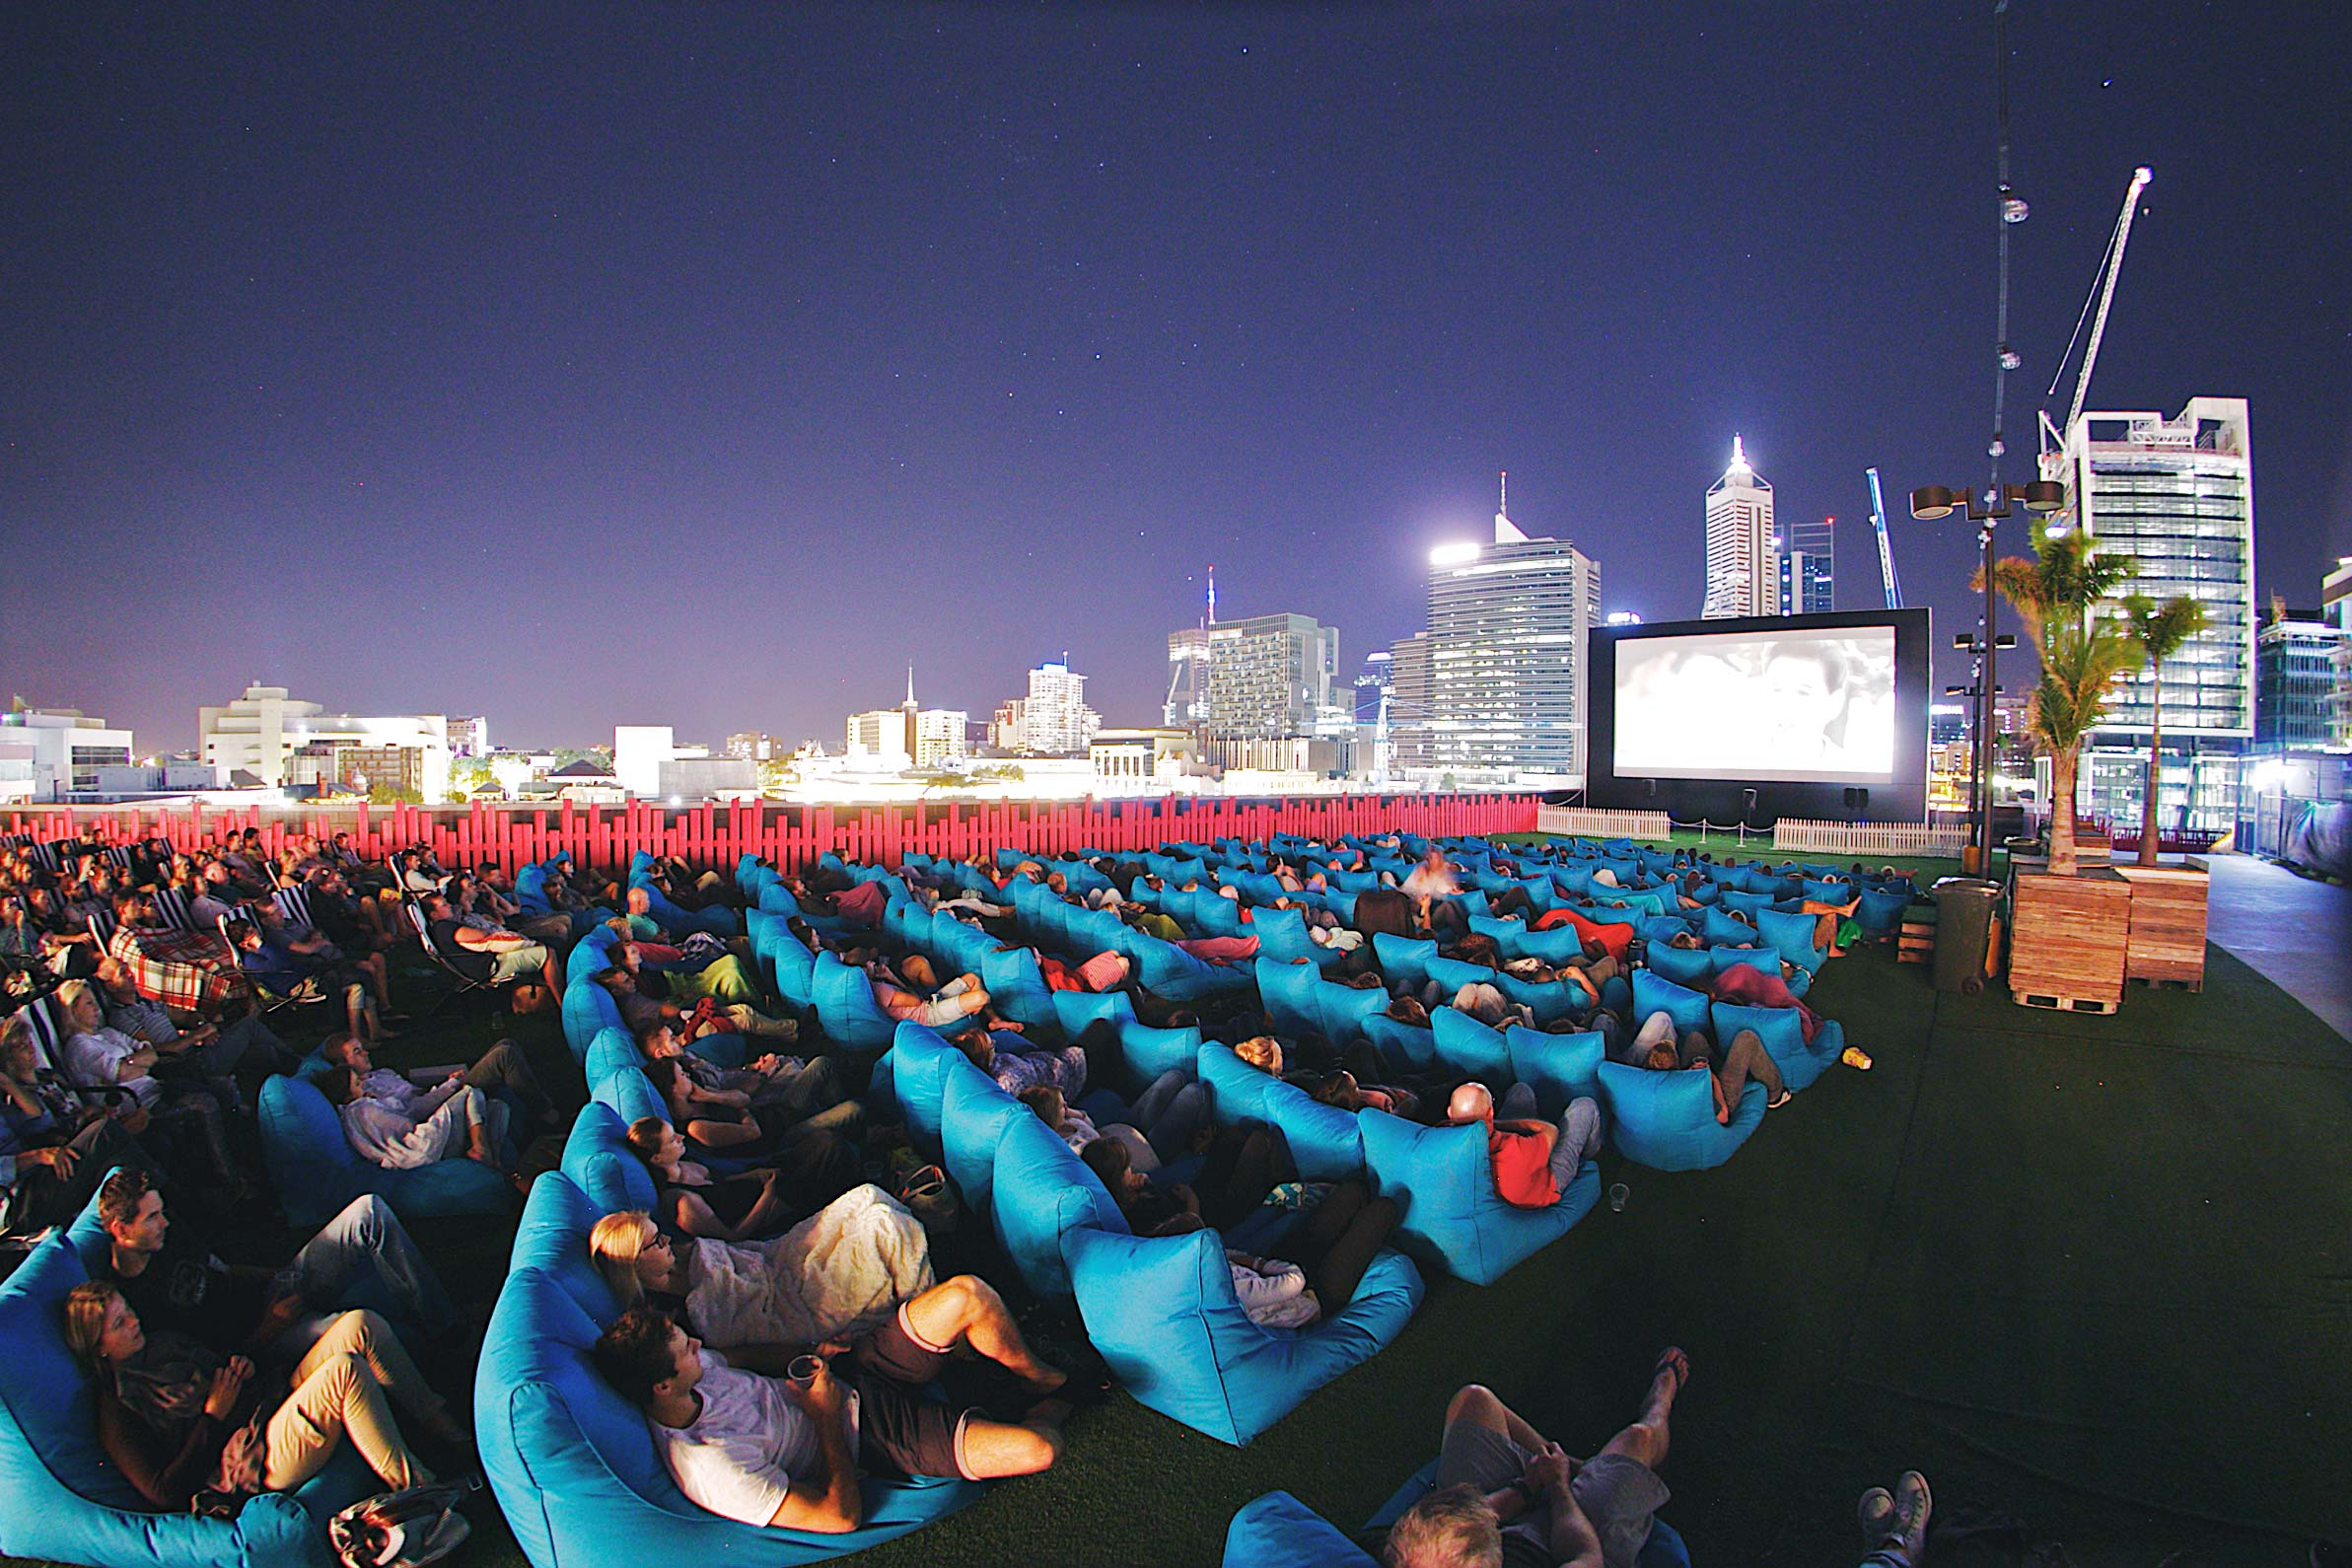 Rooftop movie theatre with the city in the background